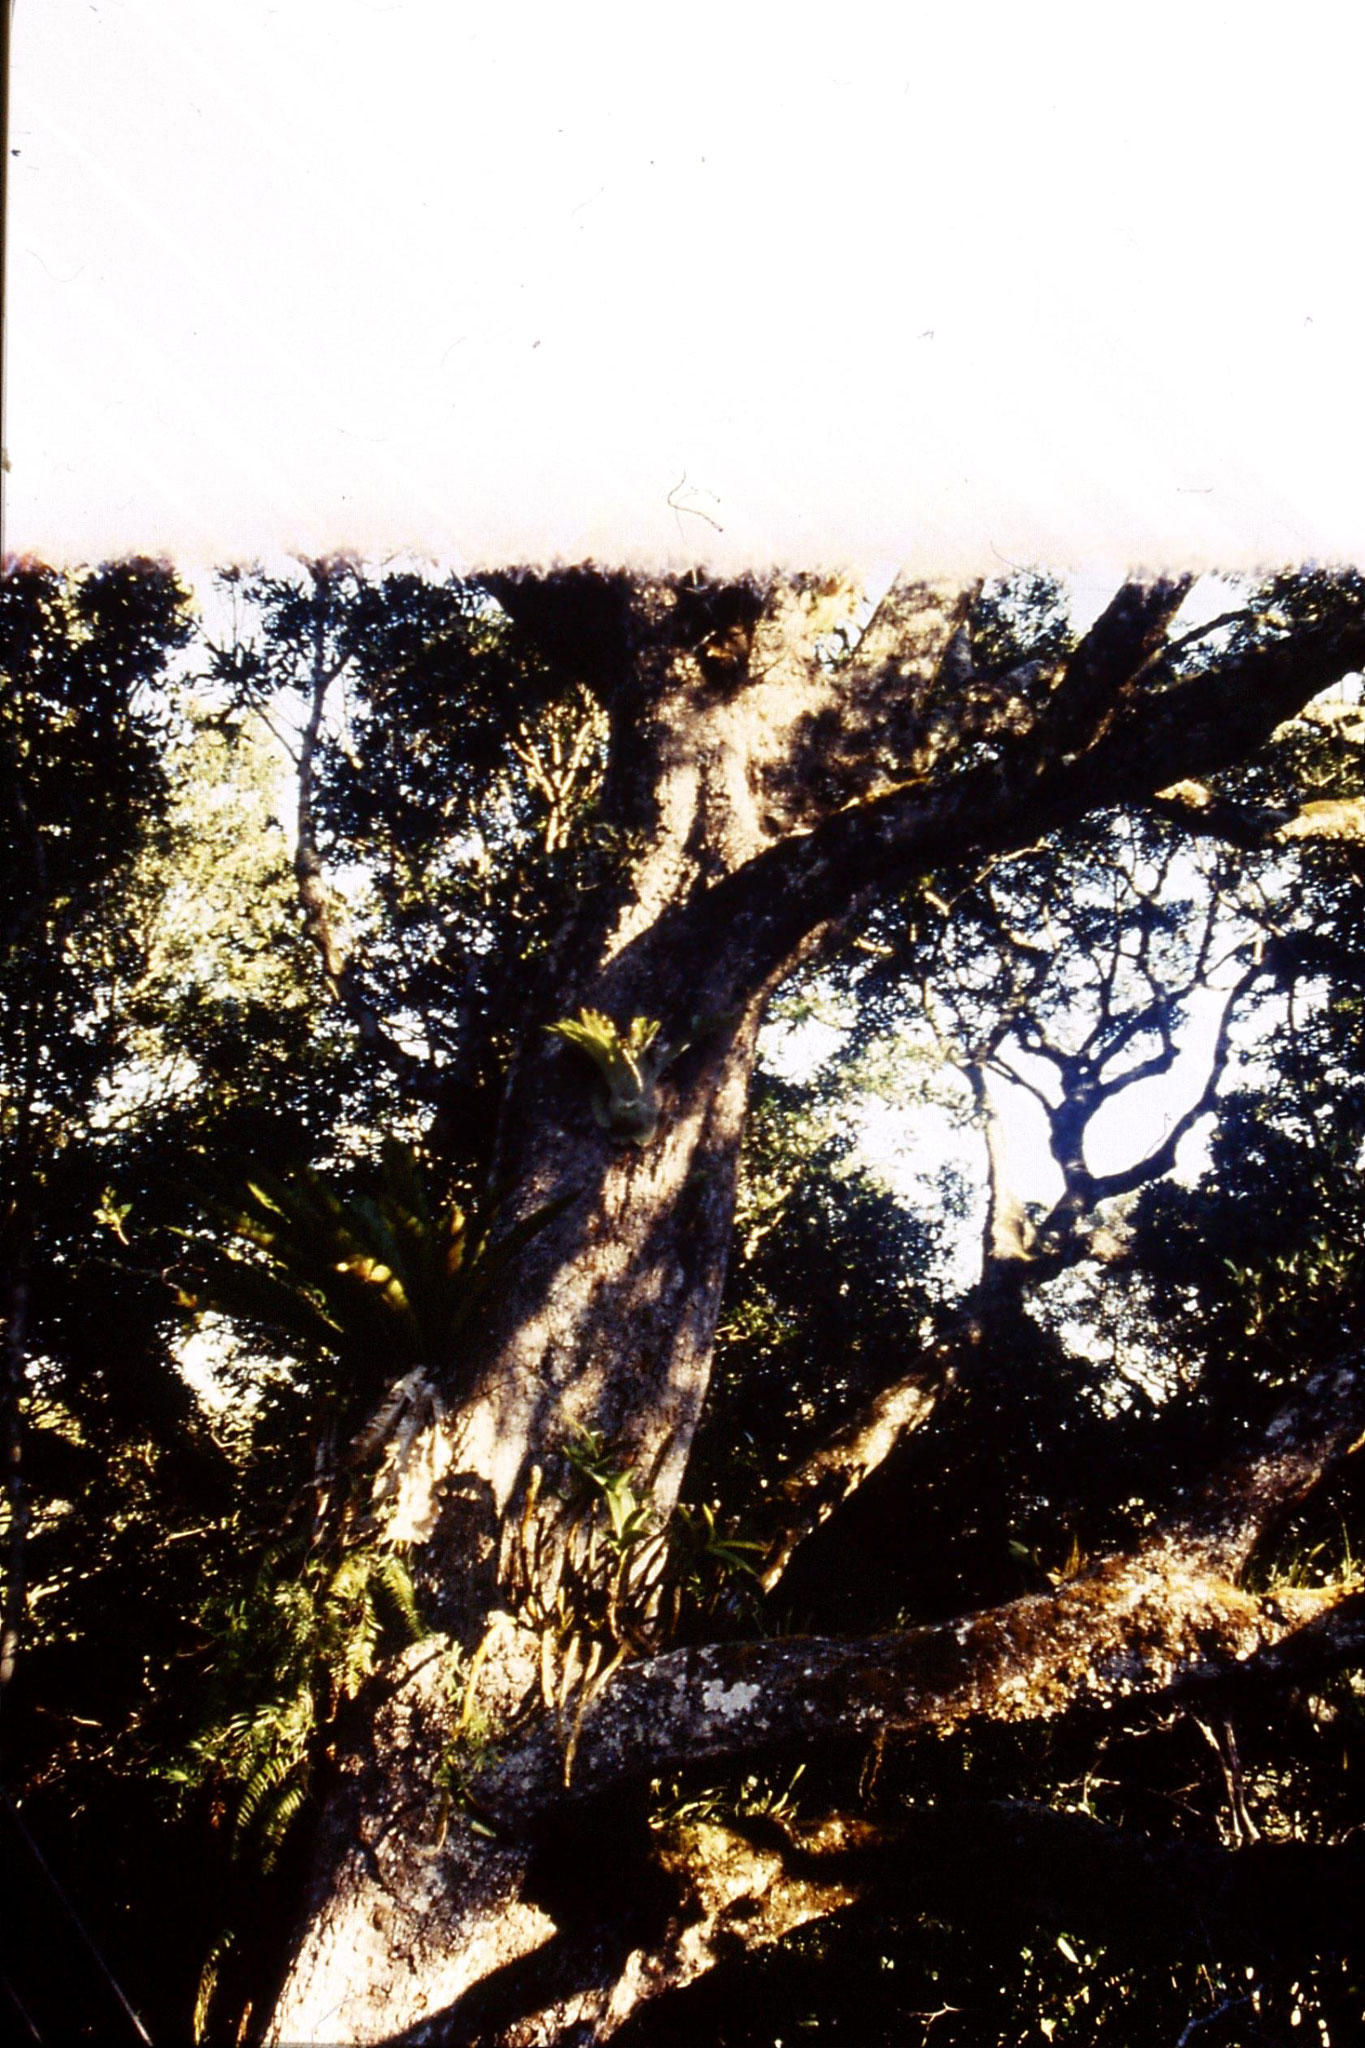 12/10/1990: -2: Mt Lamington, rainforest